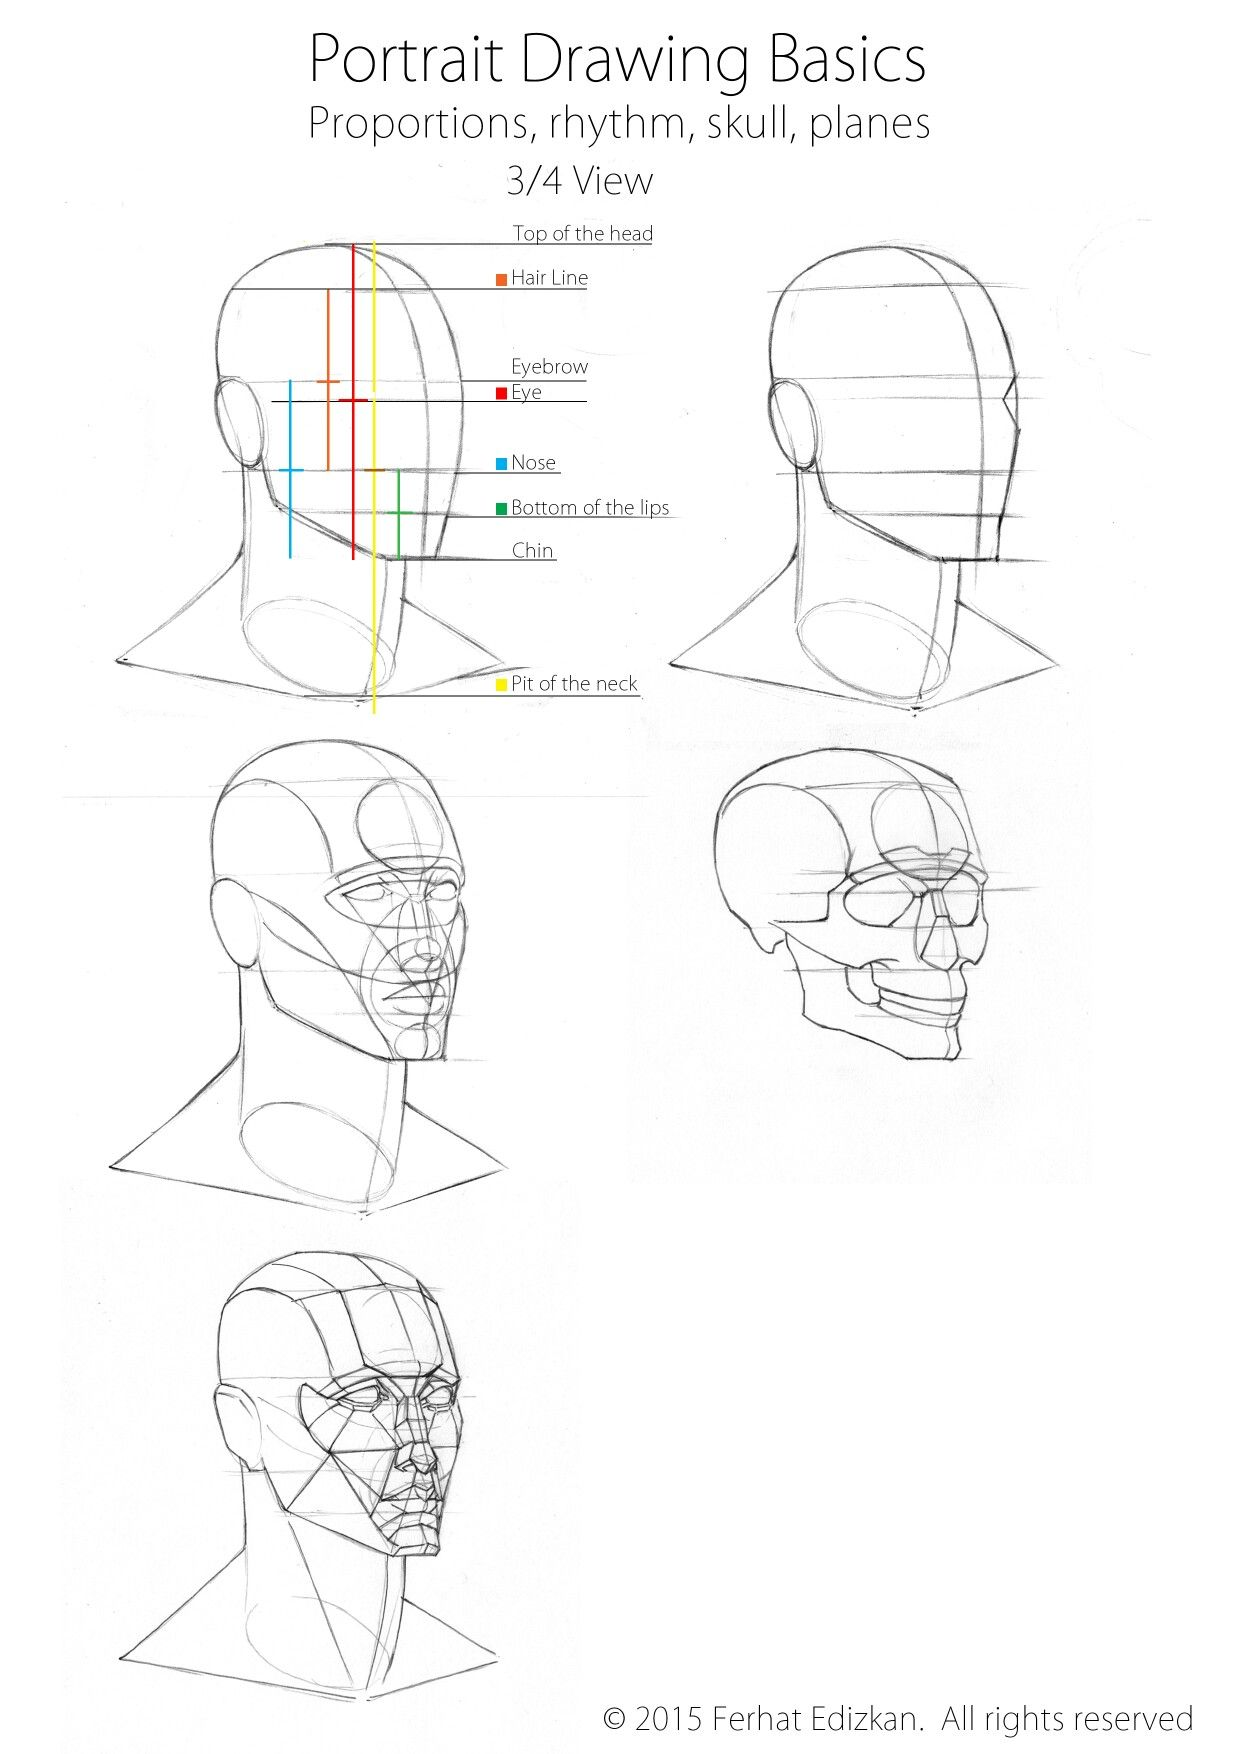 Pin by James on Faces | Pinterest | Anatomy, Drawings and Face